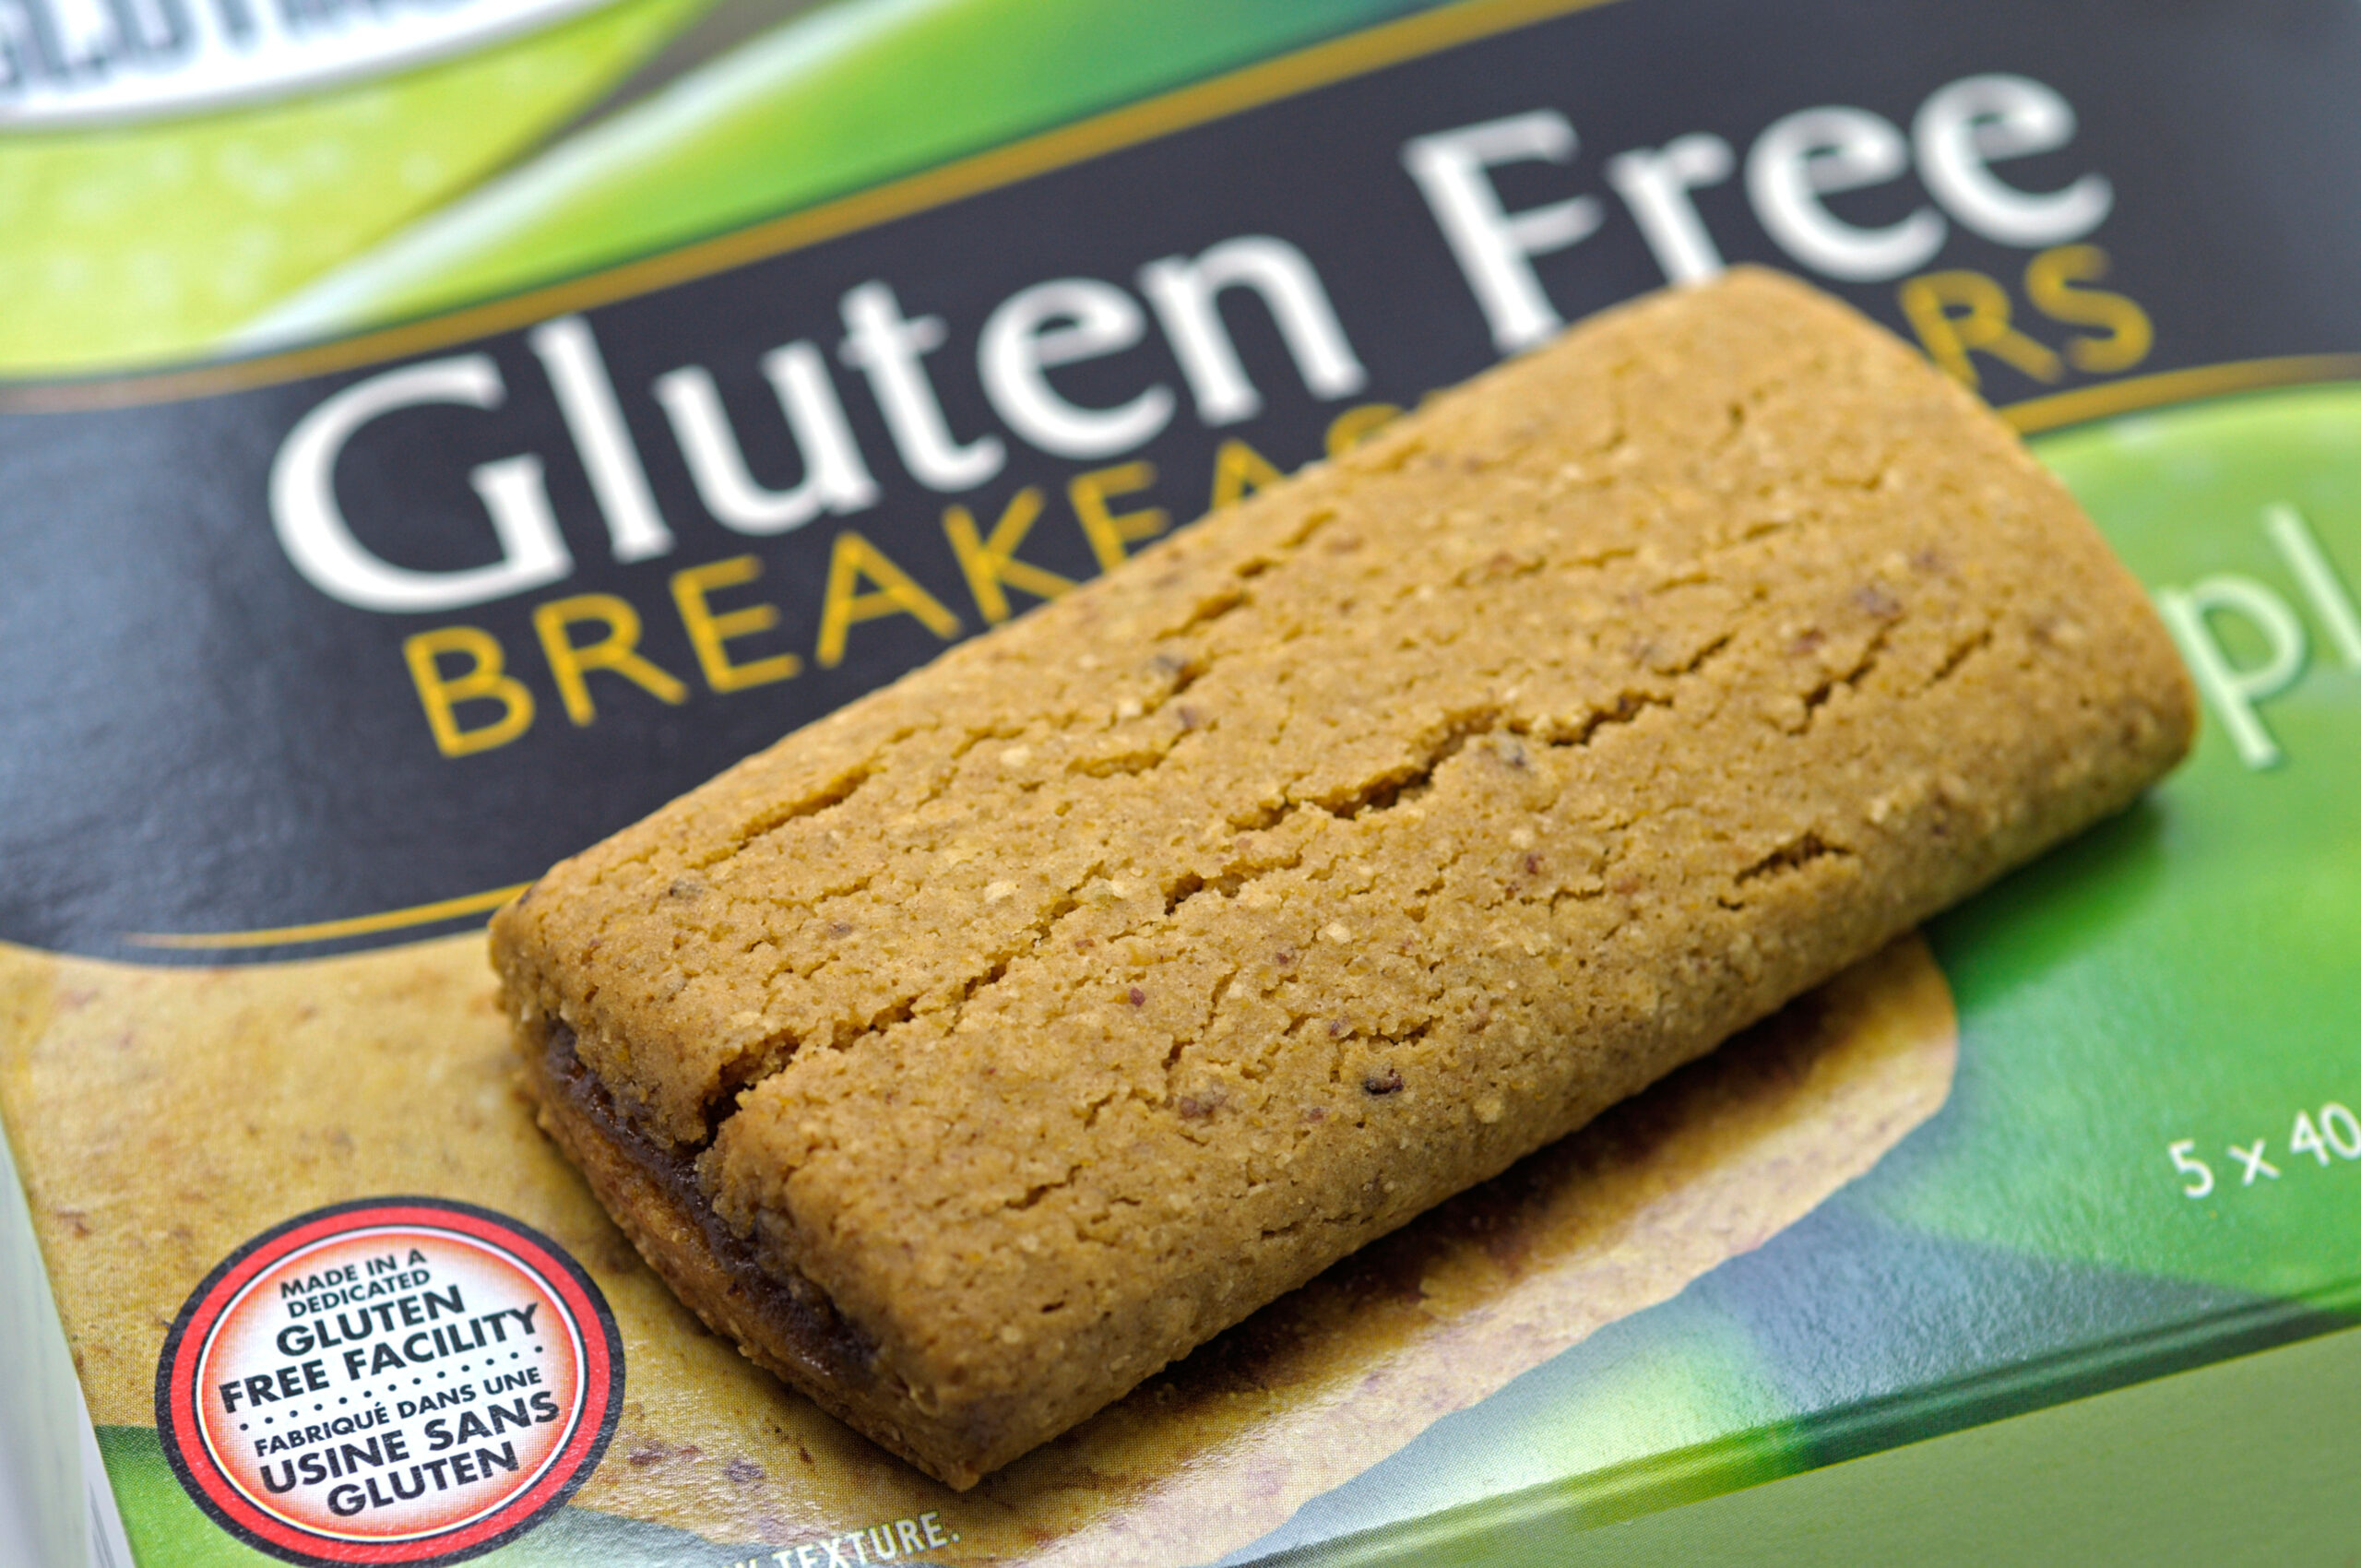 What does gluten free